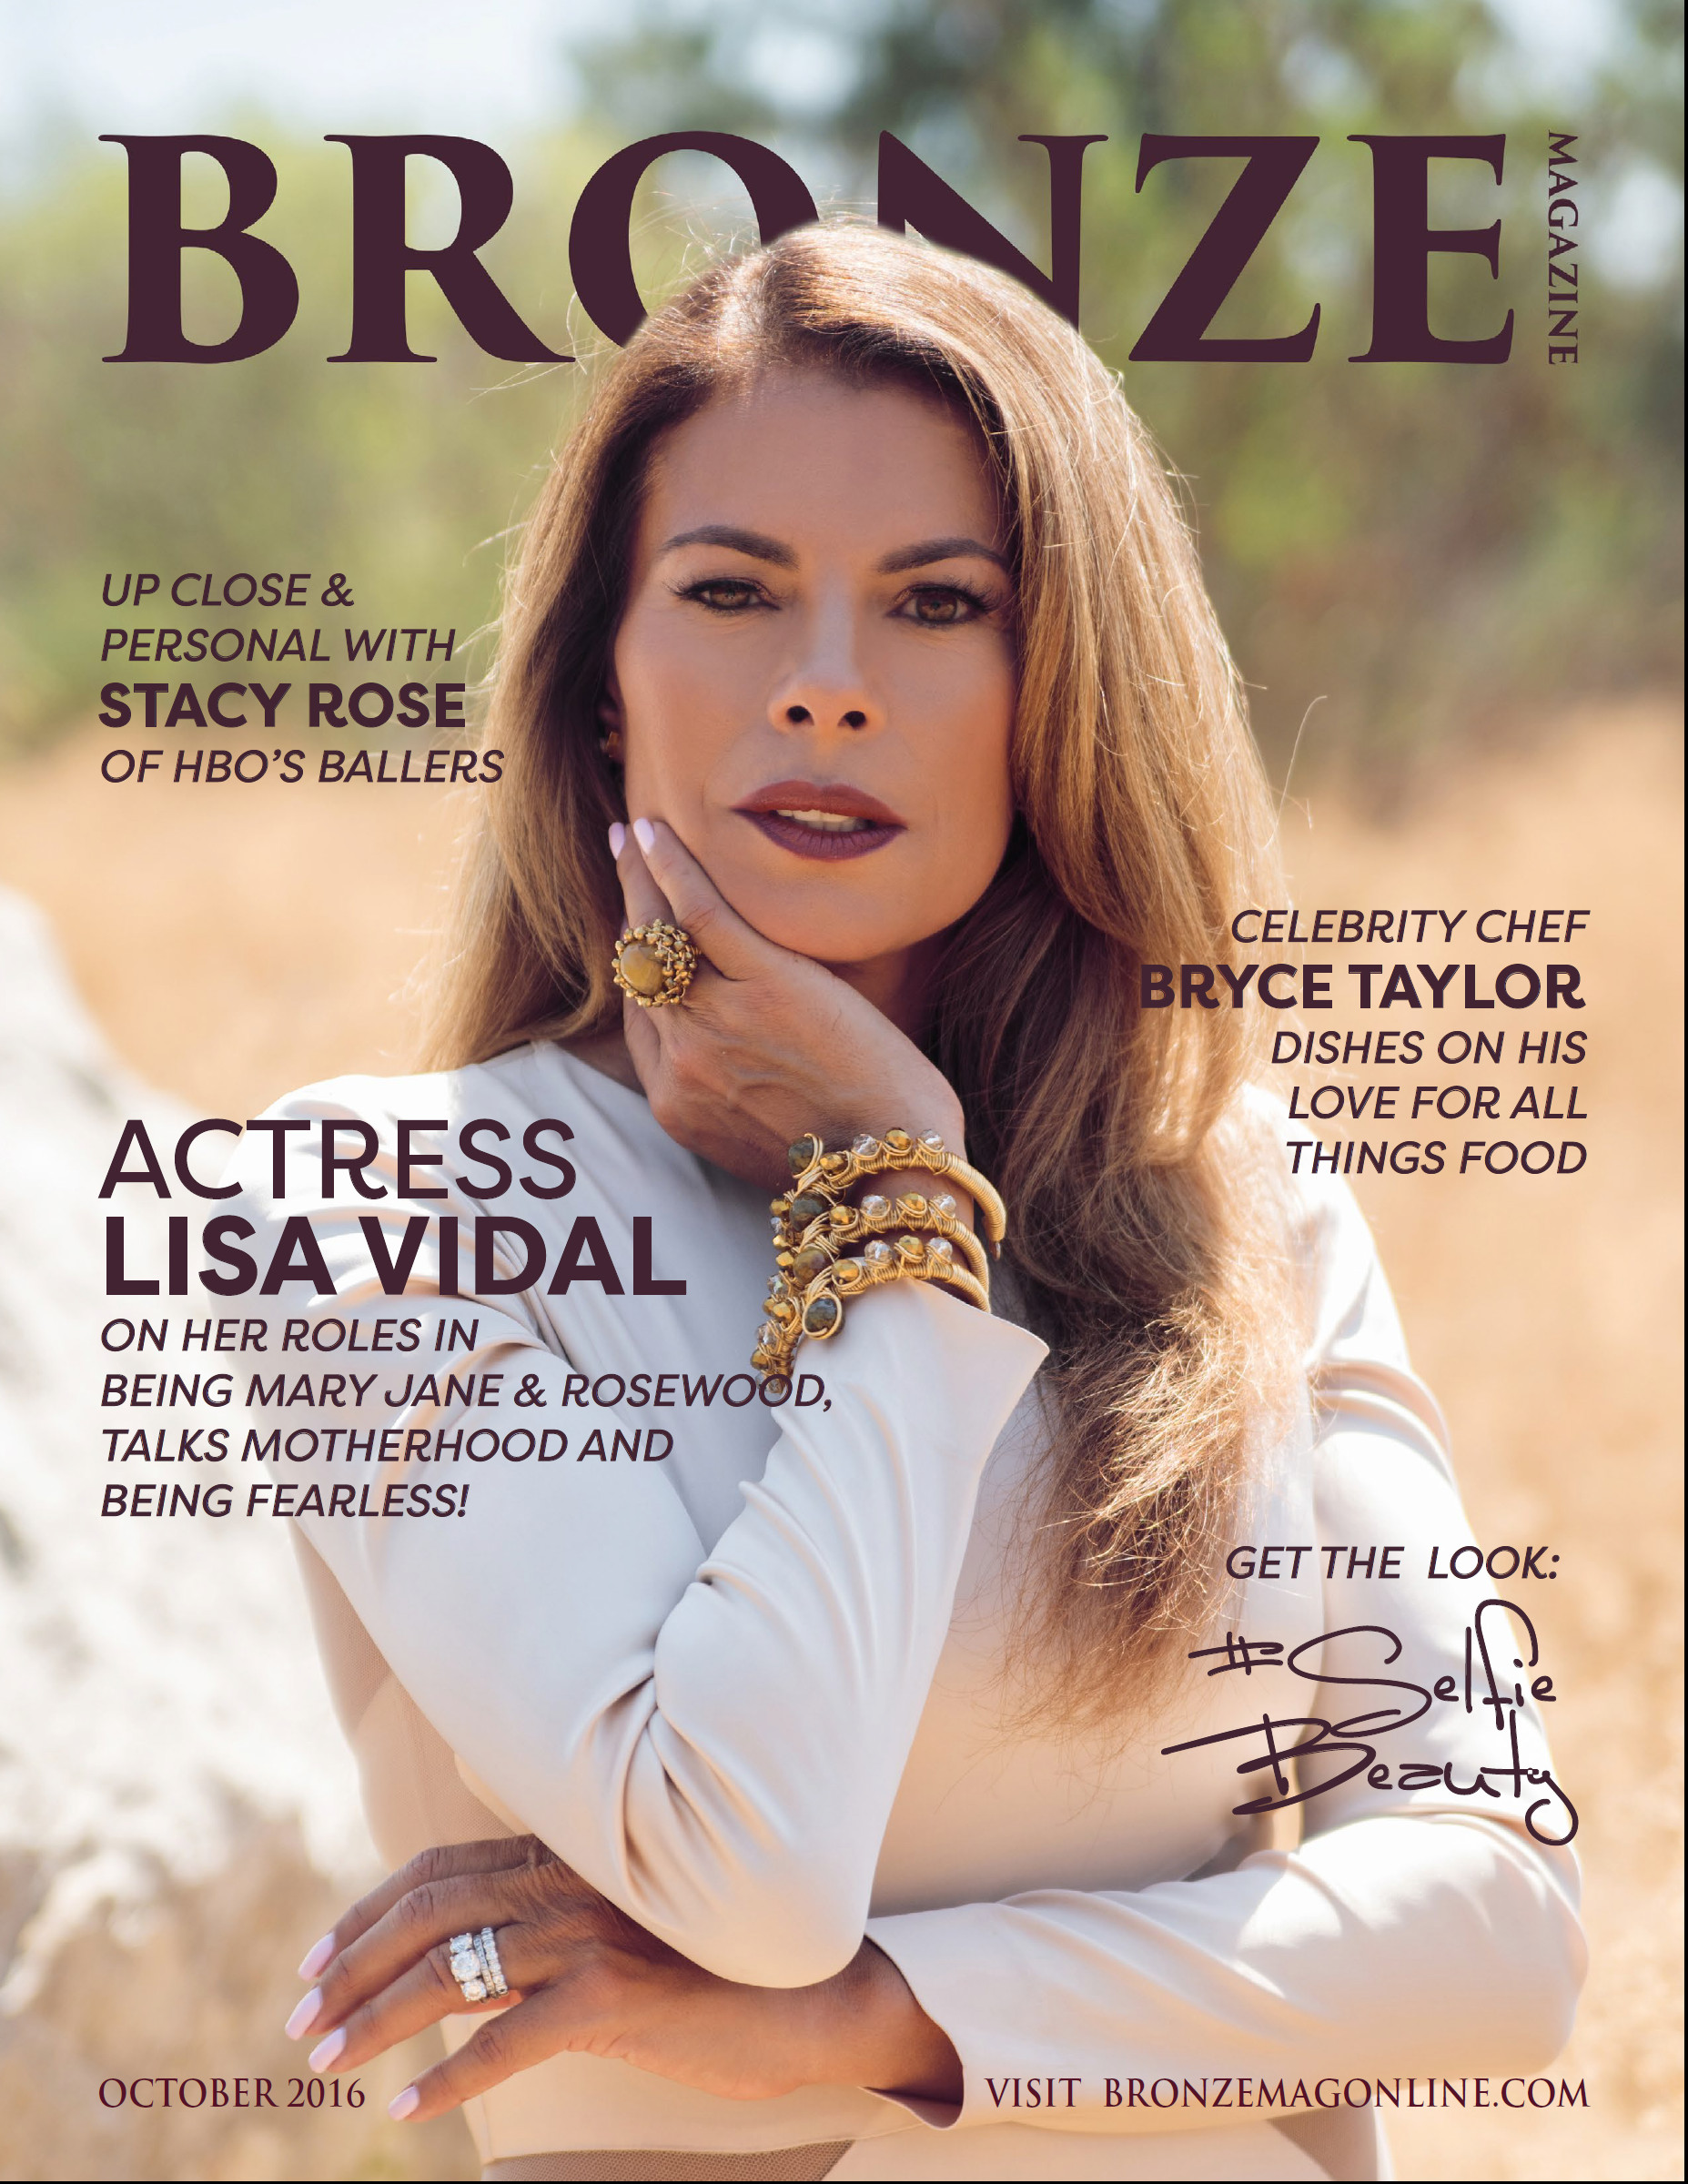 October 2016 Cover - Lisa Vidal